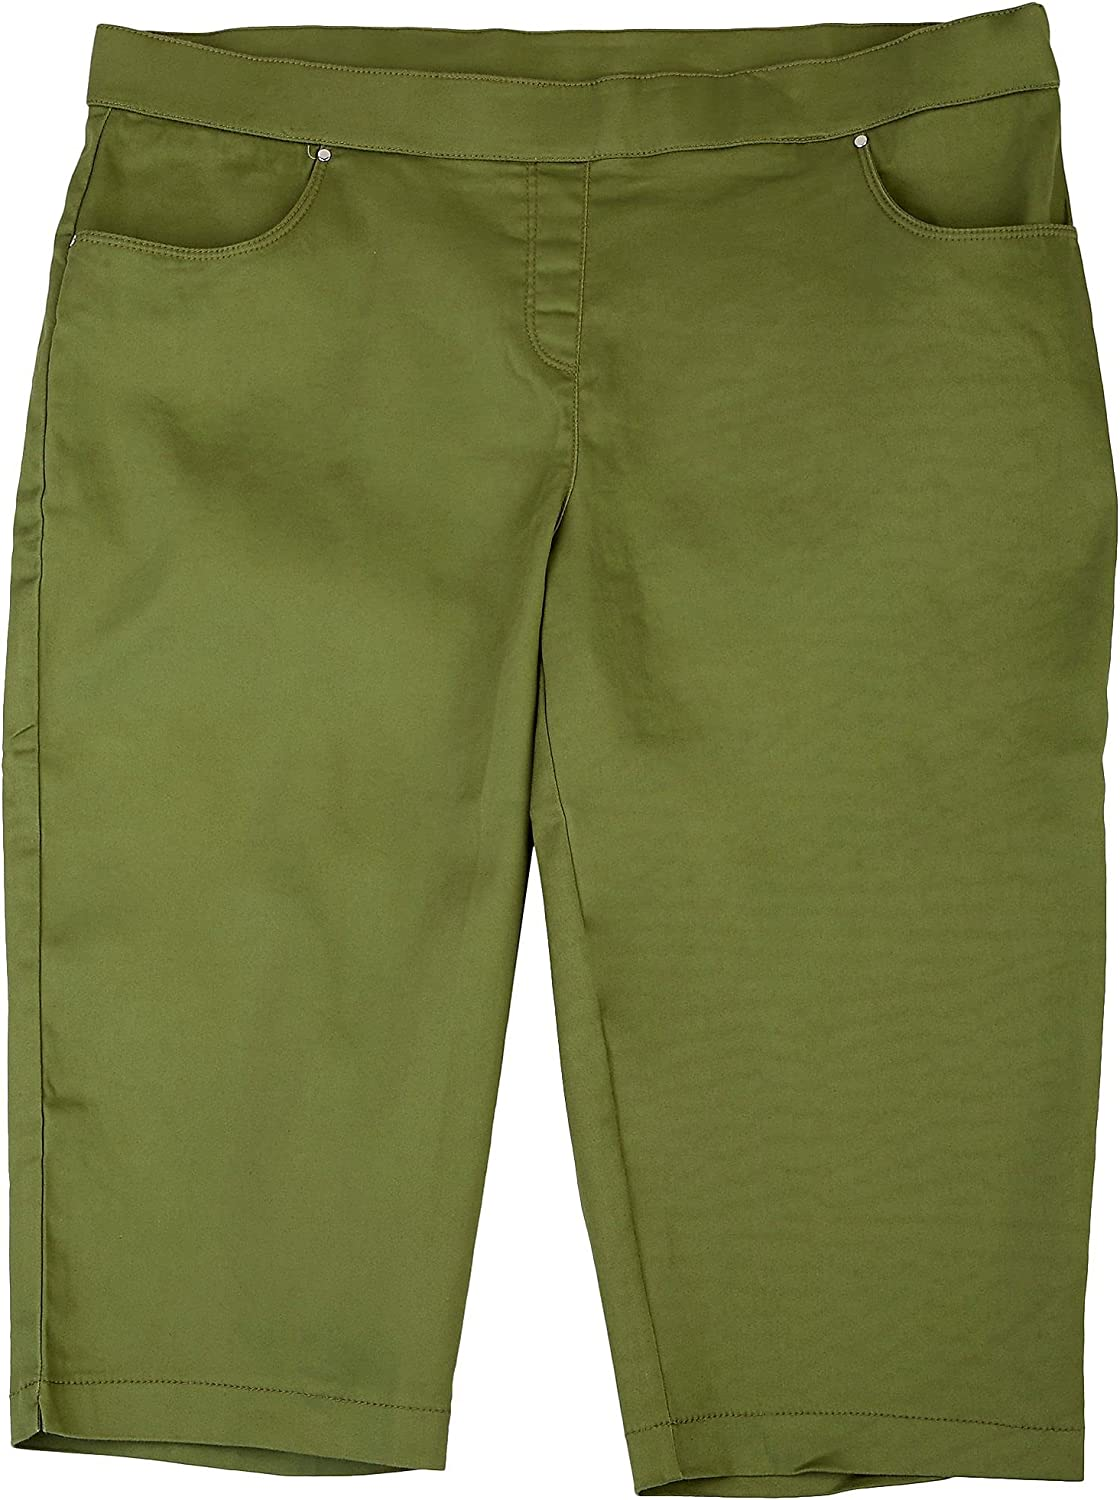 Coral Bay Plus Solid Mid Rise Capris 18W Green